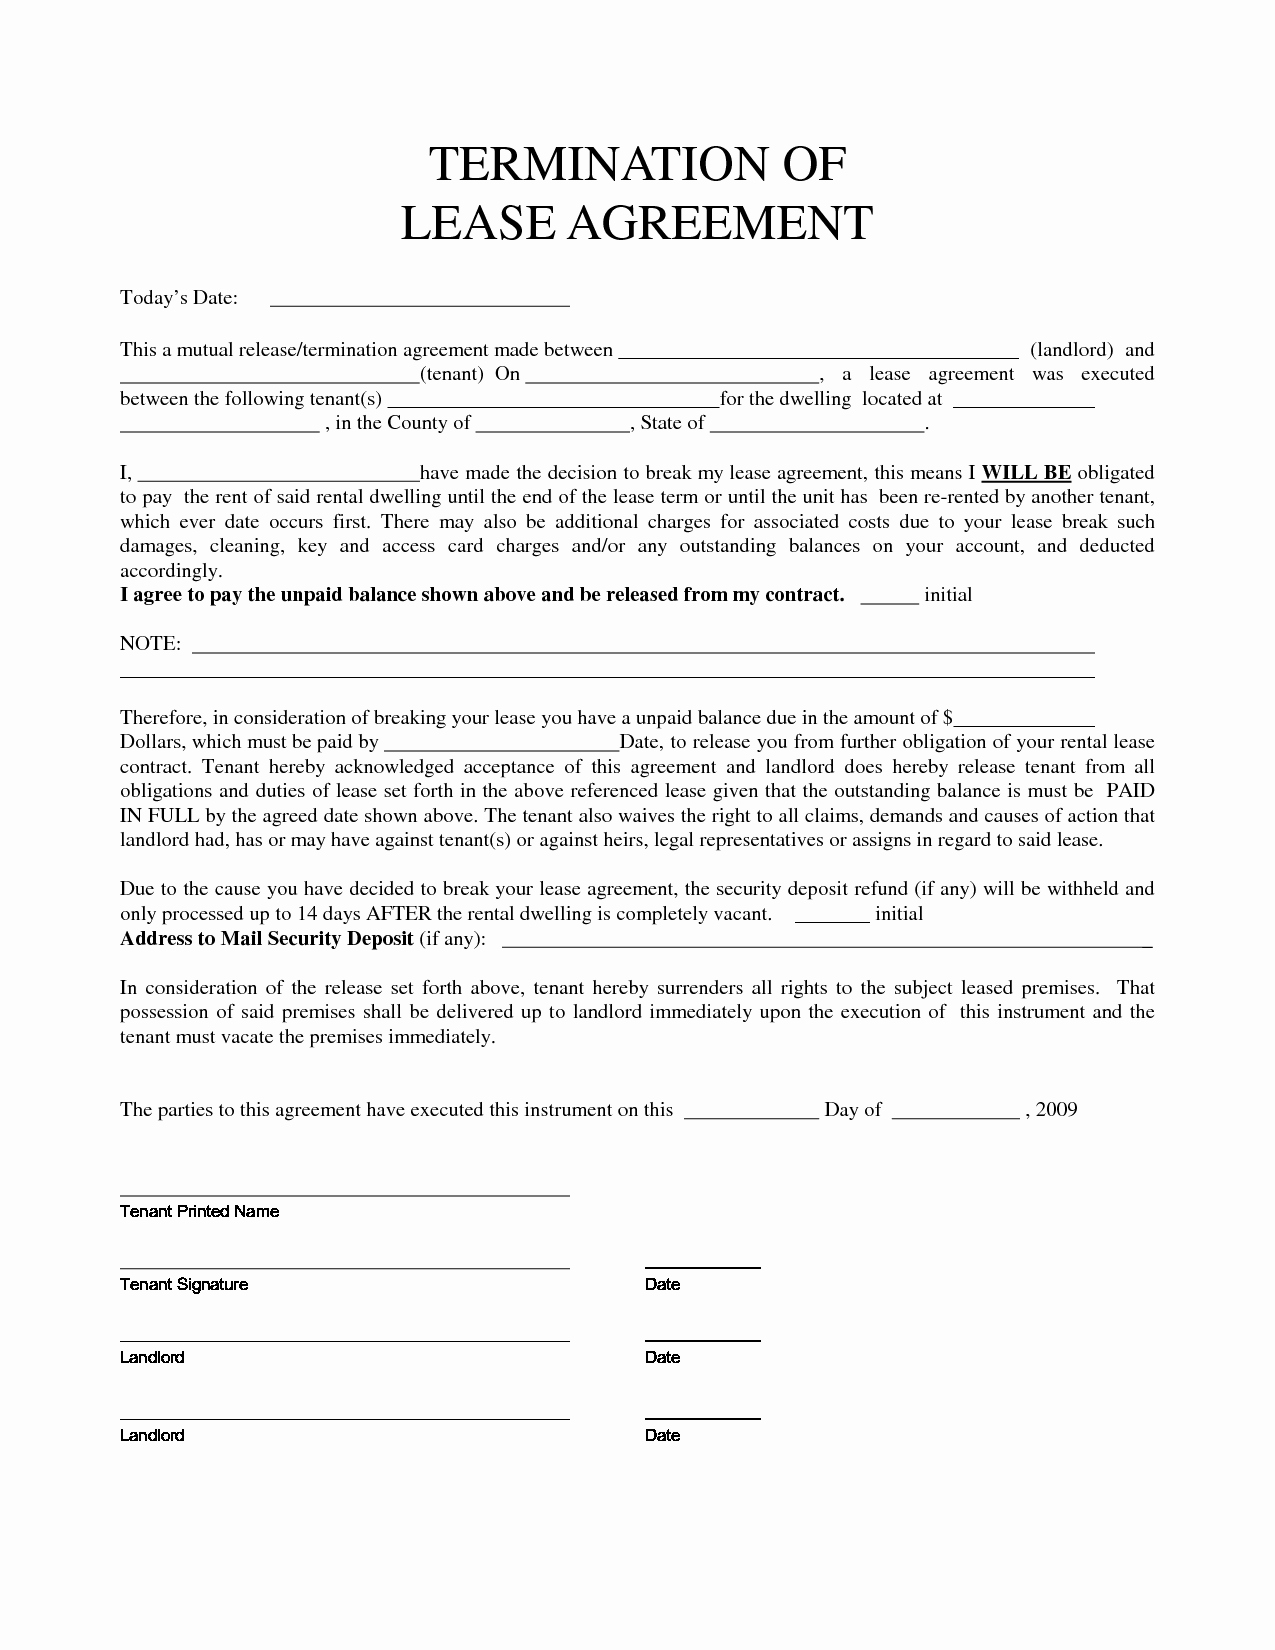 Lease Termination Agreement Template Elegant Personal Property Rental Agreement forms